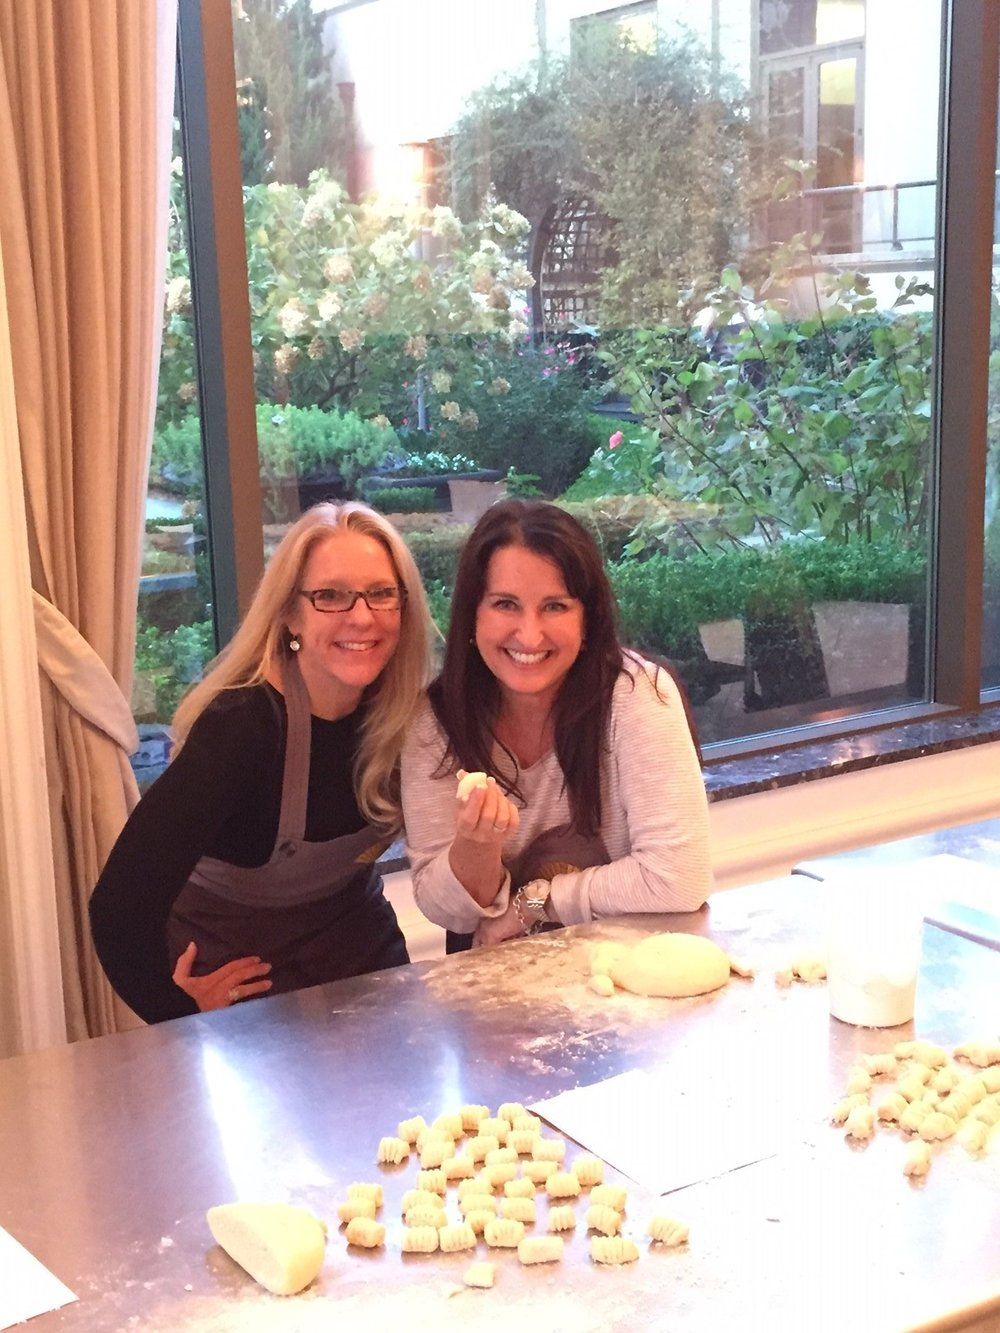 Cindy and Marcia work with culinary teams to make potato gnocchi. Marcia beat the pants off Cindy in the competition! Looks like some delicious team building!